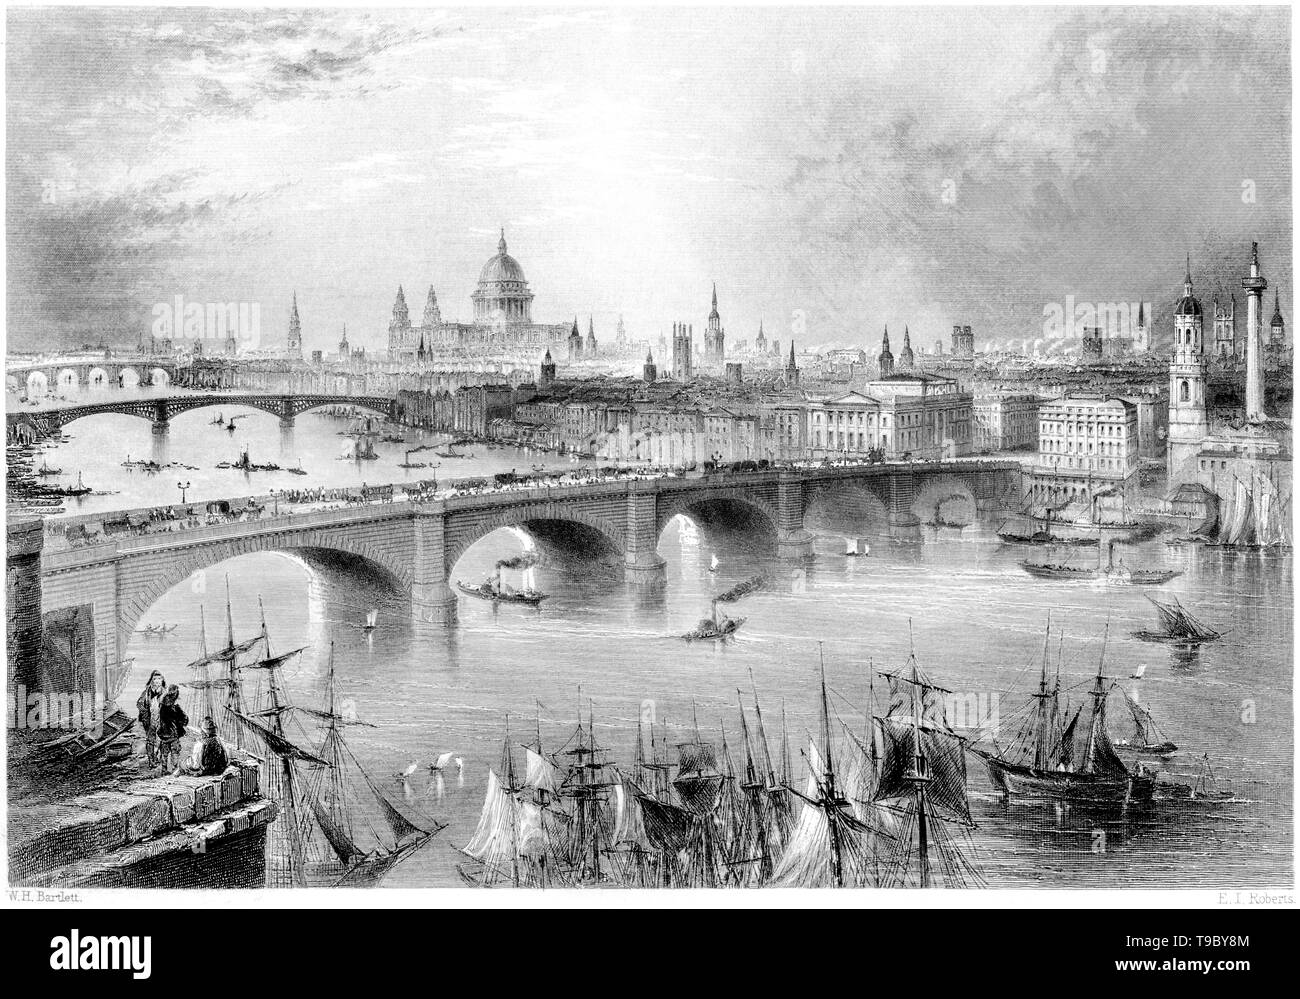 An engraving of a General View of London from the Southwark side scanned at high resolution from a book published in 1842.  Believed copyright free. - Stock Image